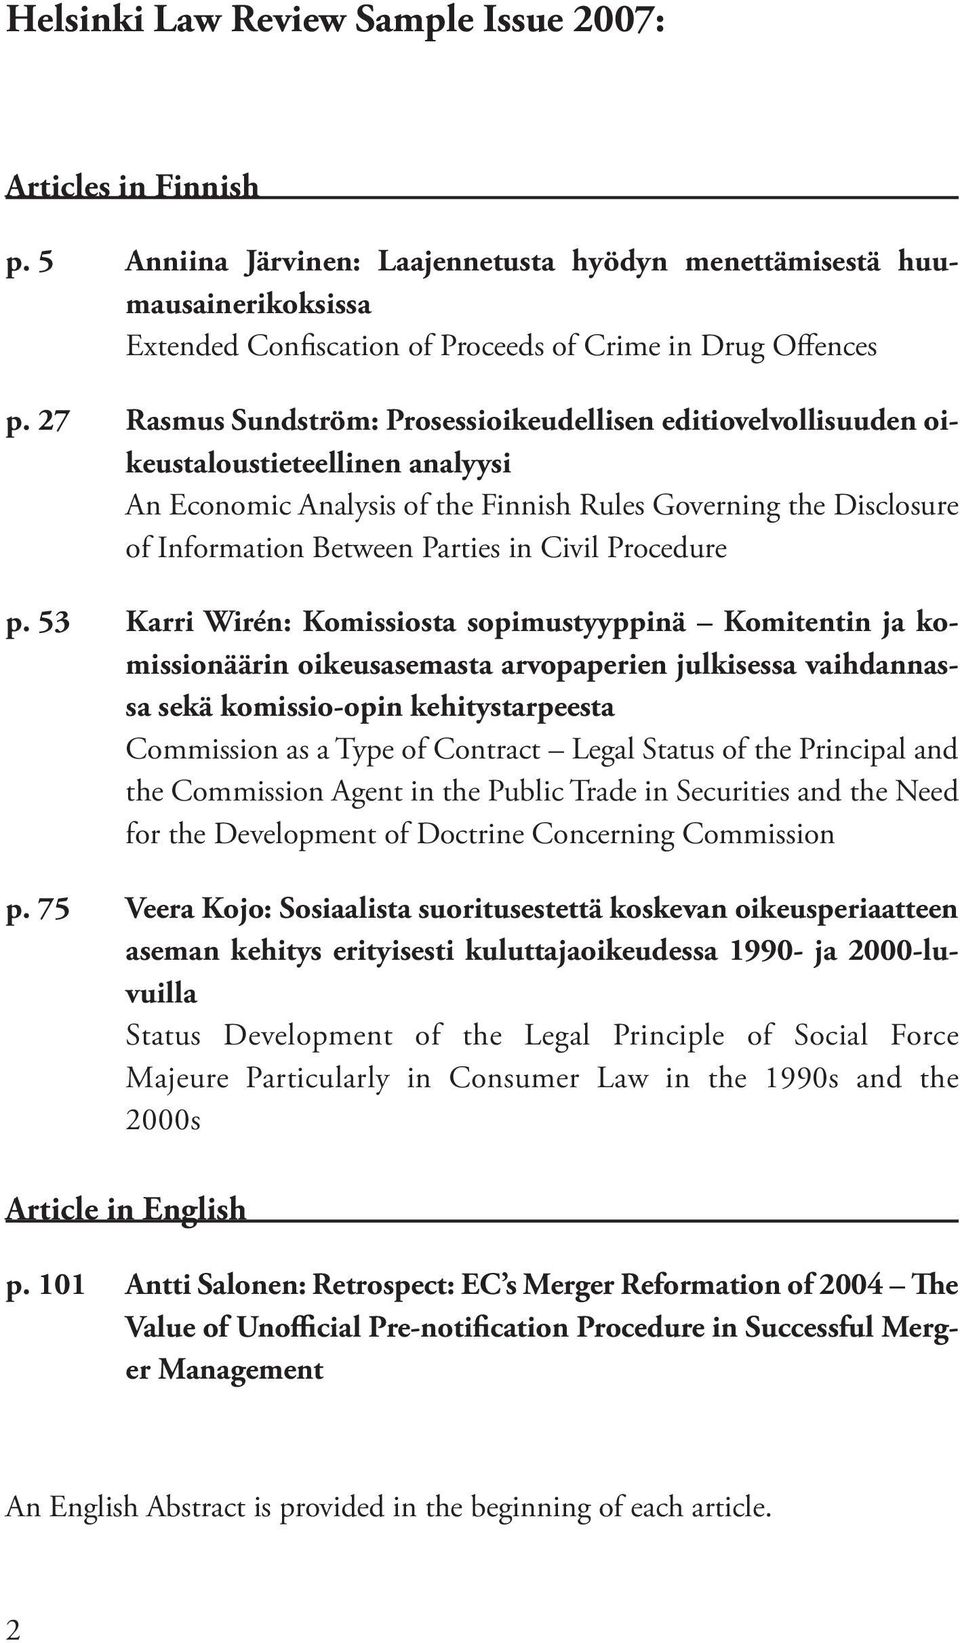 27 Rasmus Sundström: Prosessioikeudellisen editiovelvollisuuden oikeustaloustieteellinen analyysi An Economic Analysis of the Finnish Rules Governing the Disclosure of Information Between Parties in